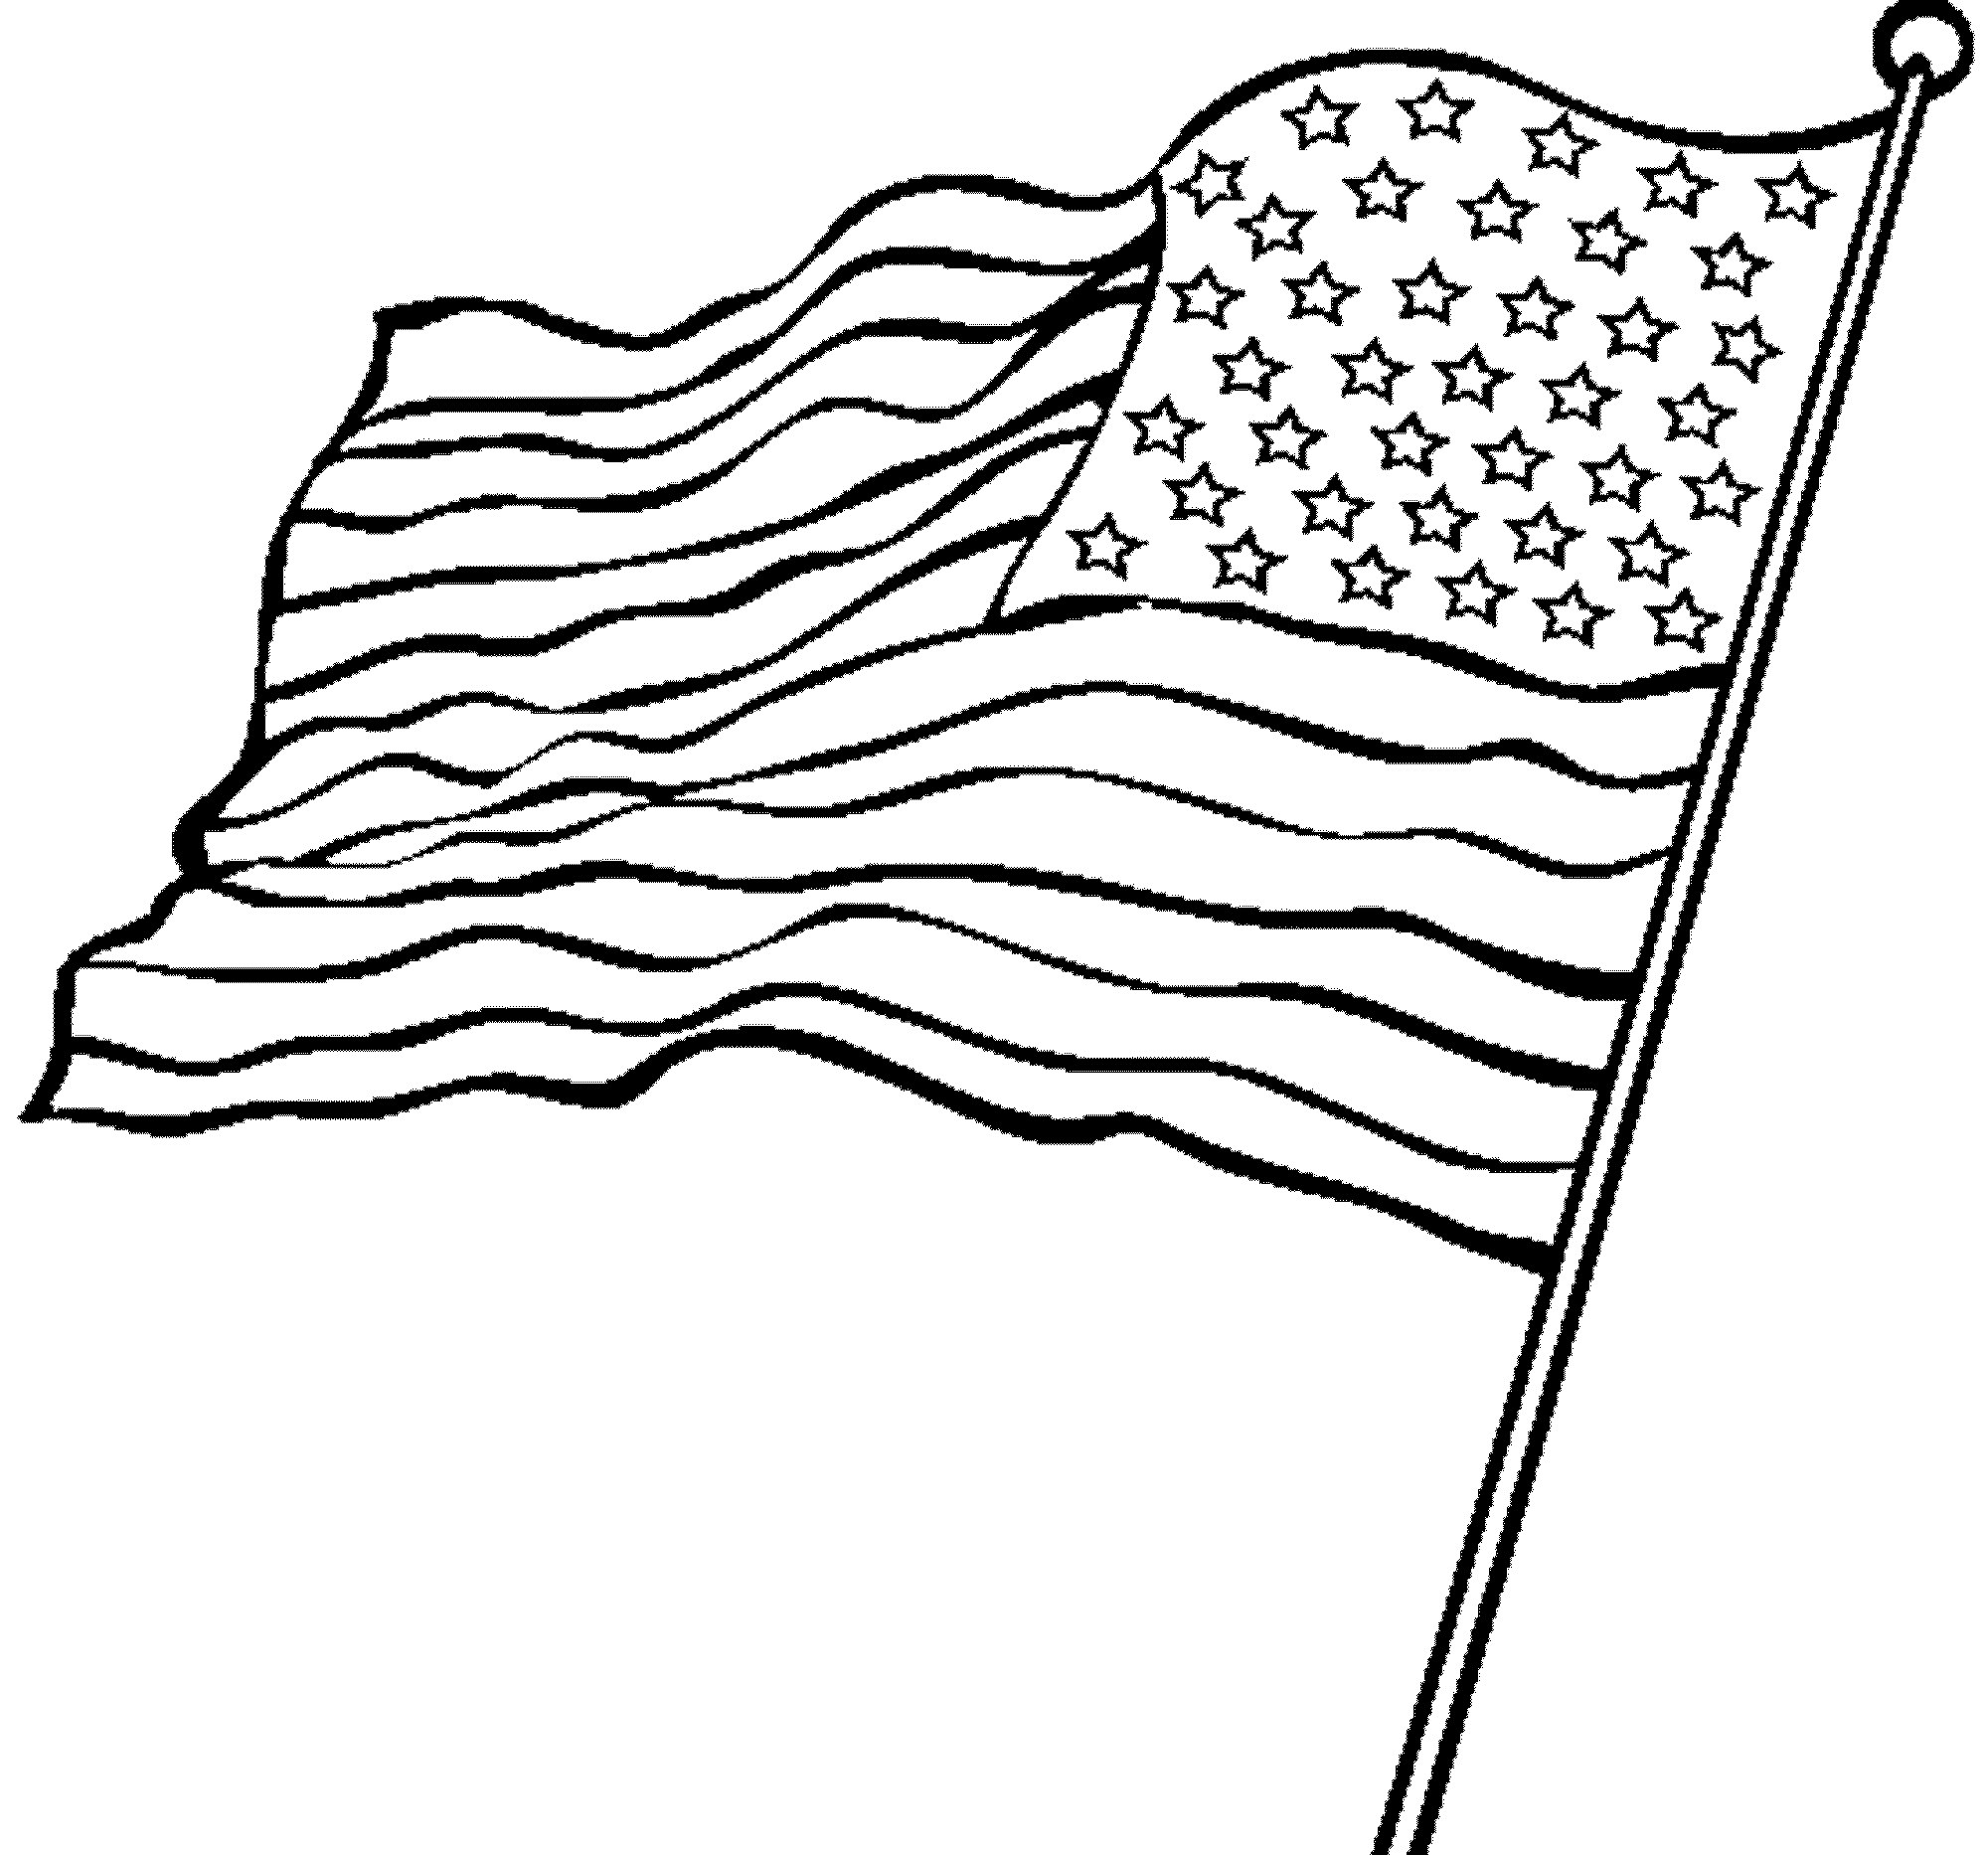 Waving american flag drawing for Coloring page of the american flag